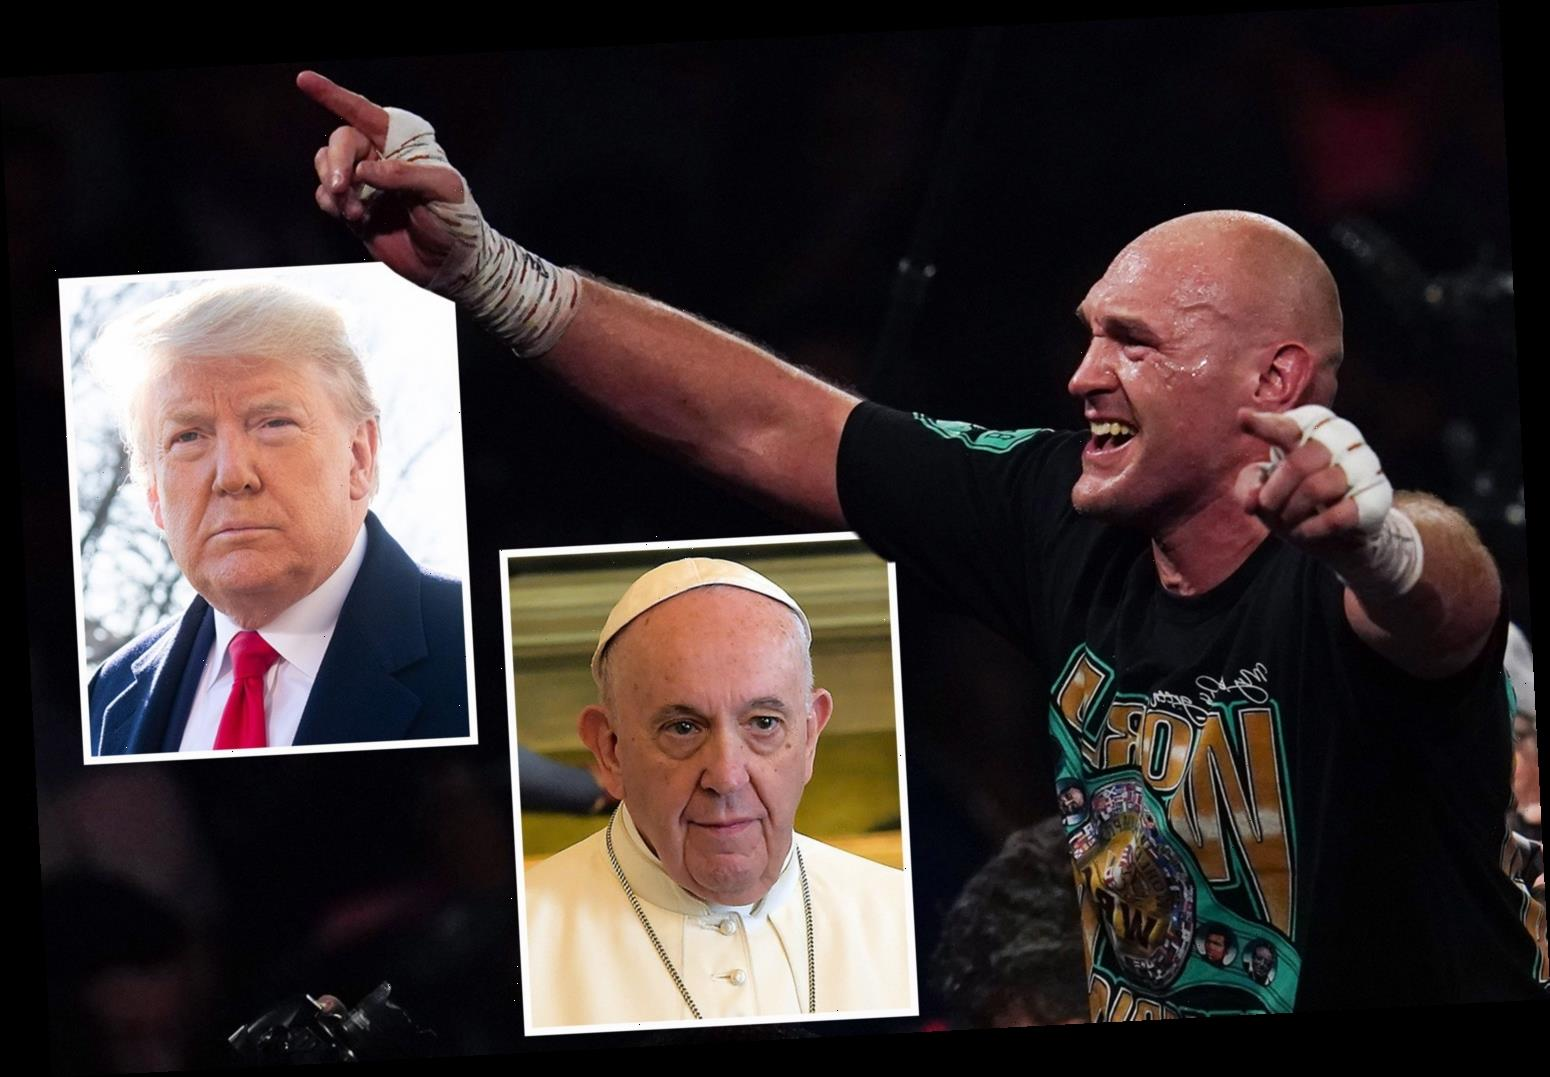 Tyson Fury invited by Donald Trump to White House and by Pope to the Vatican after historic win over Wilder – The Sun